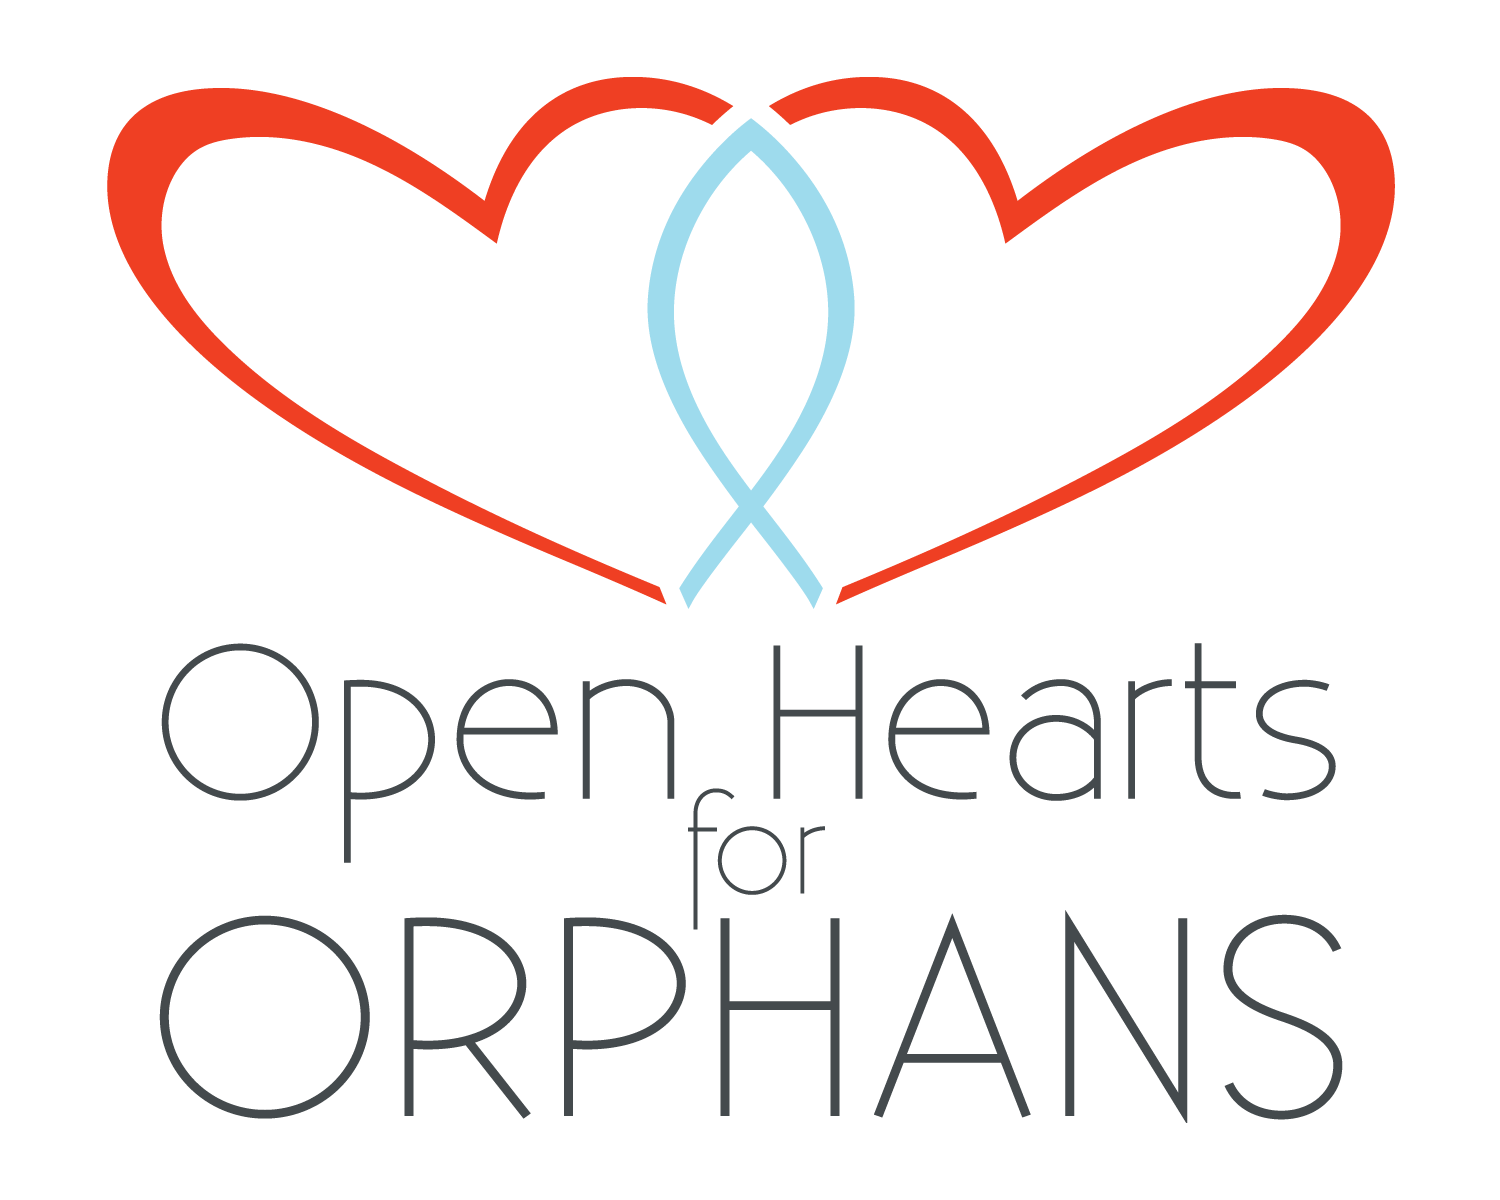 About Open Hearts for Orphans